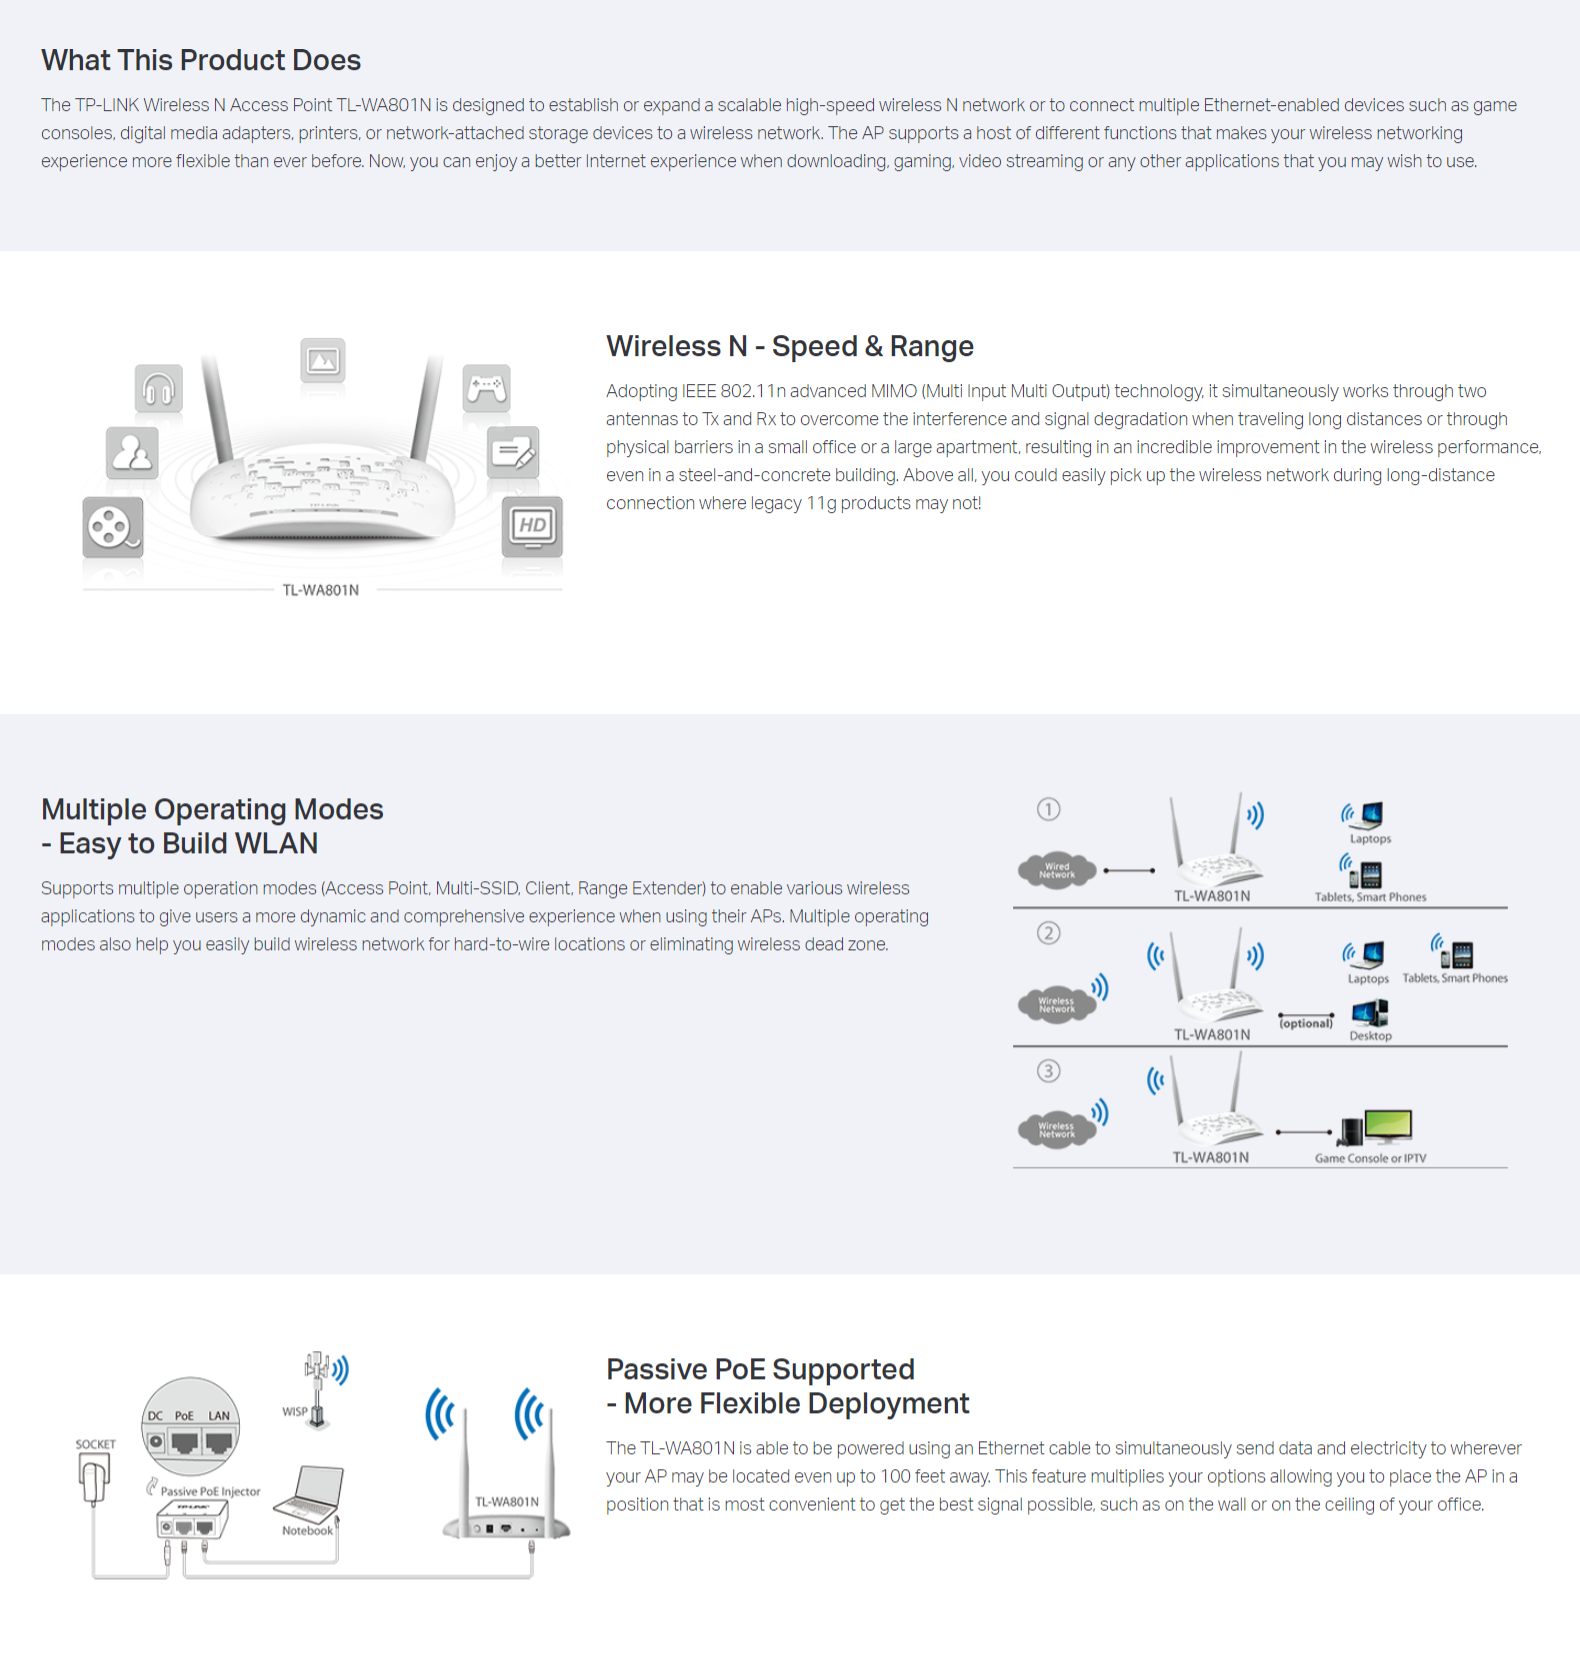 screencapture-tp-link-au-home-networking-access-point-tl-wa801n-2020-12-09-14_12_08.png